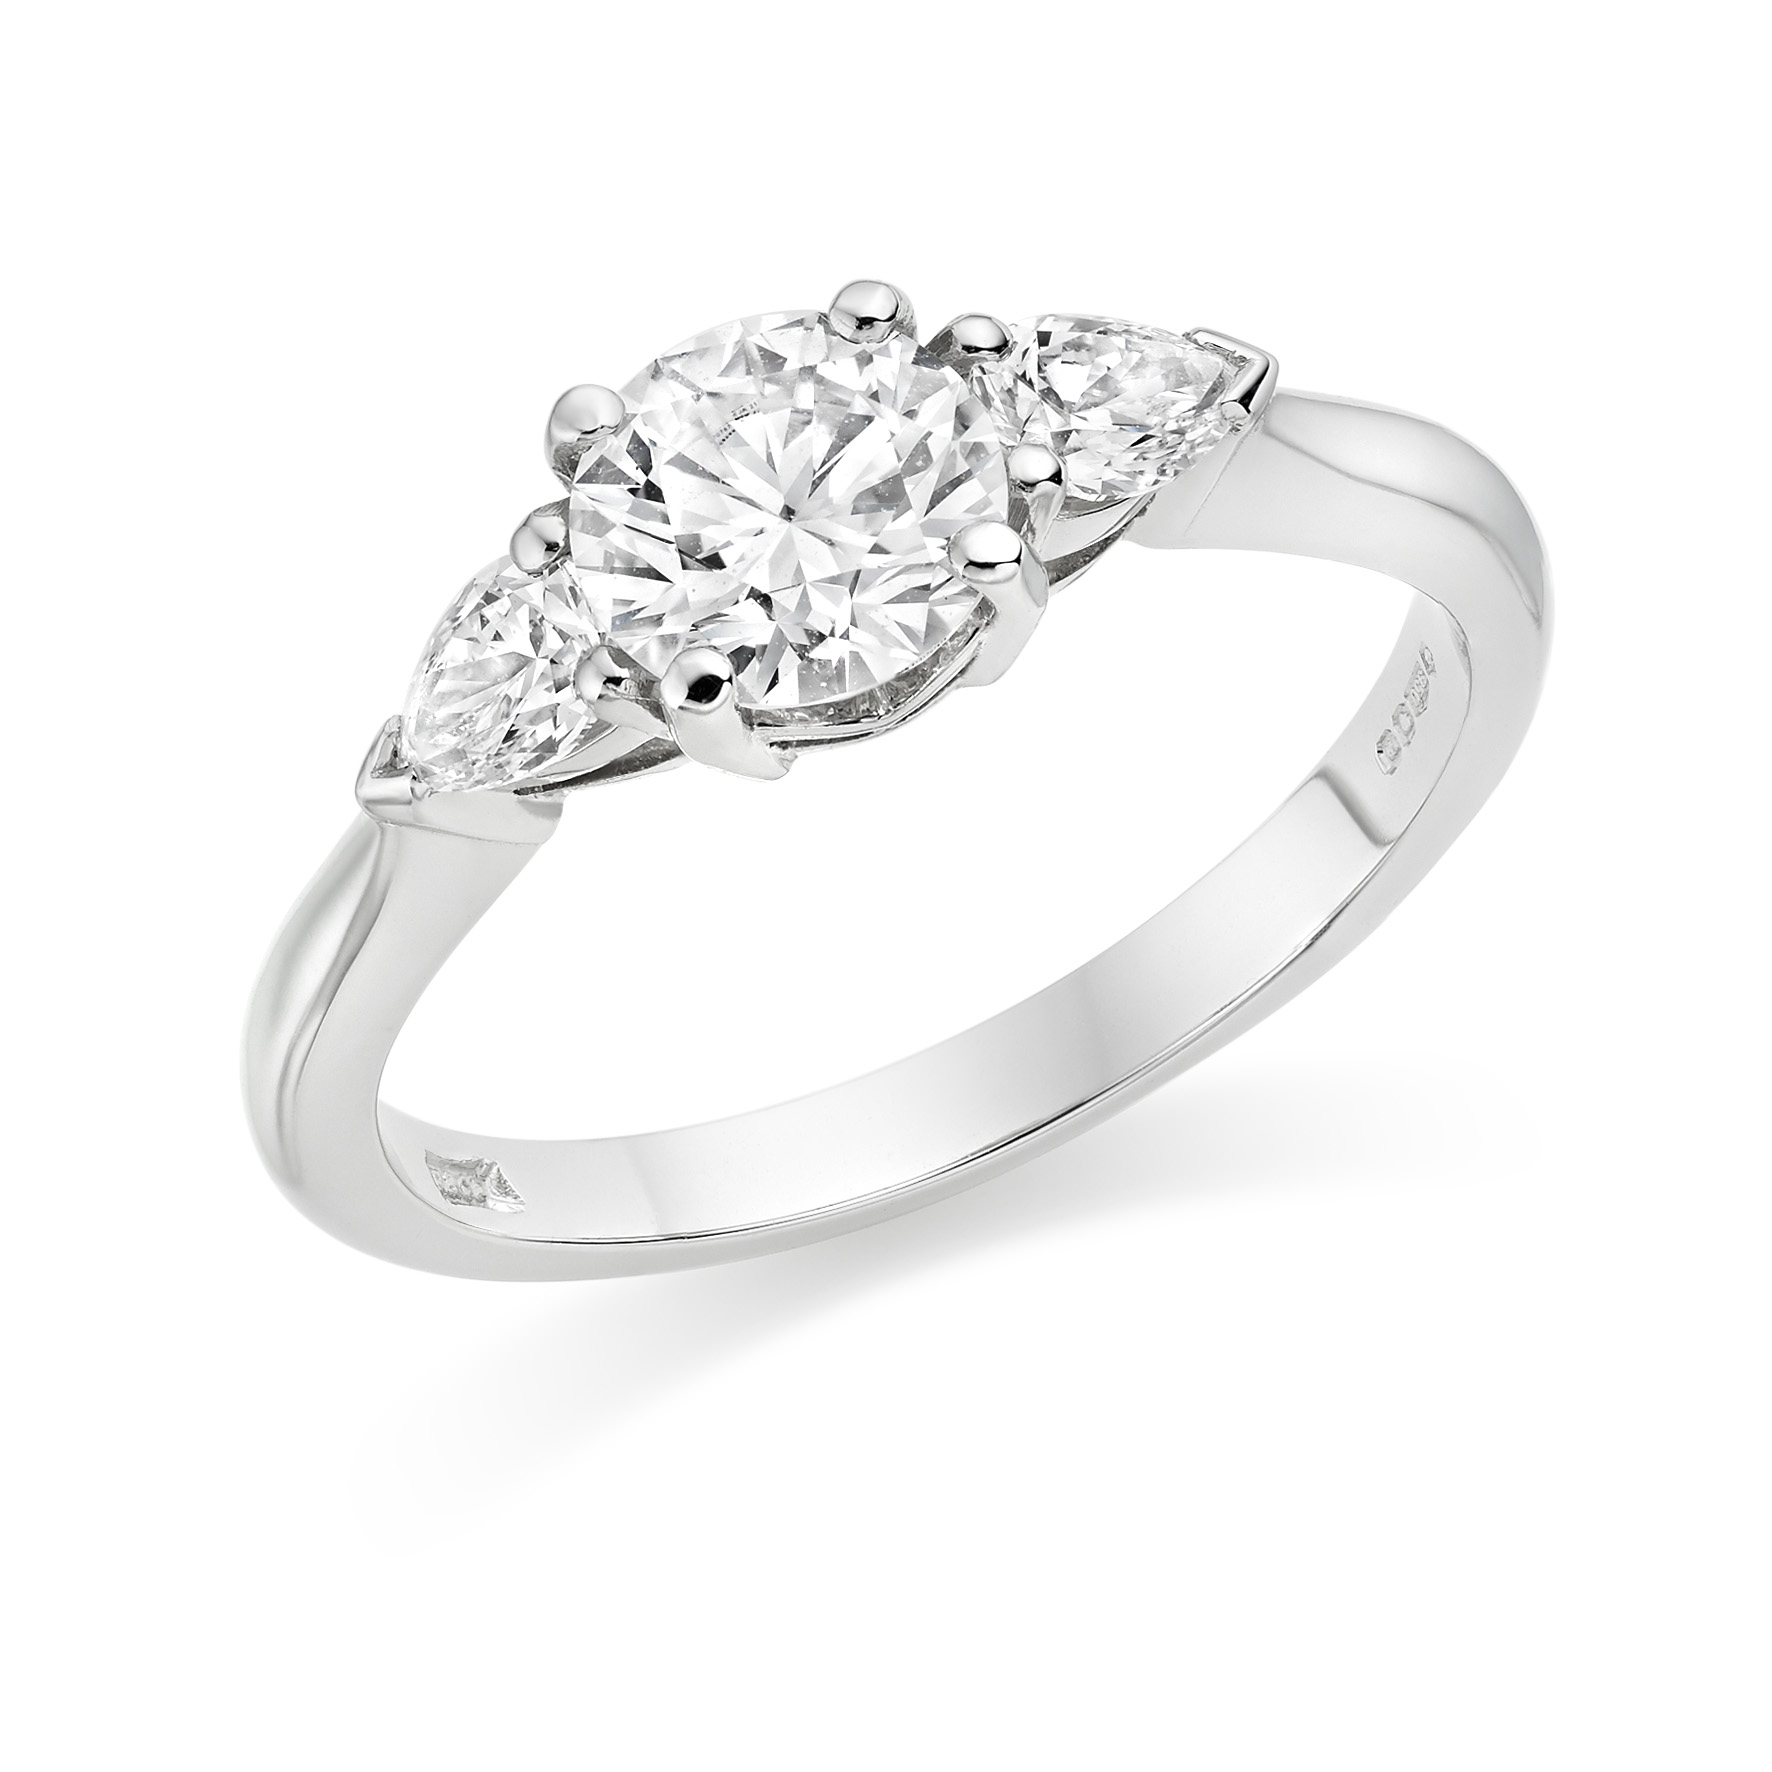 Design your Engagement Ring in Hatton Garden